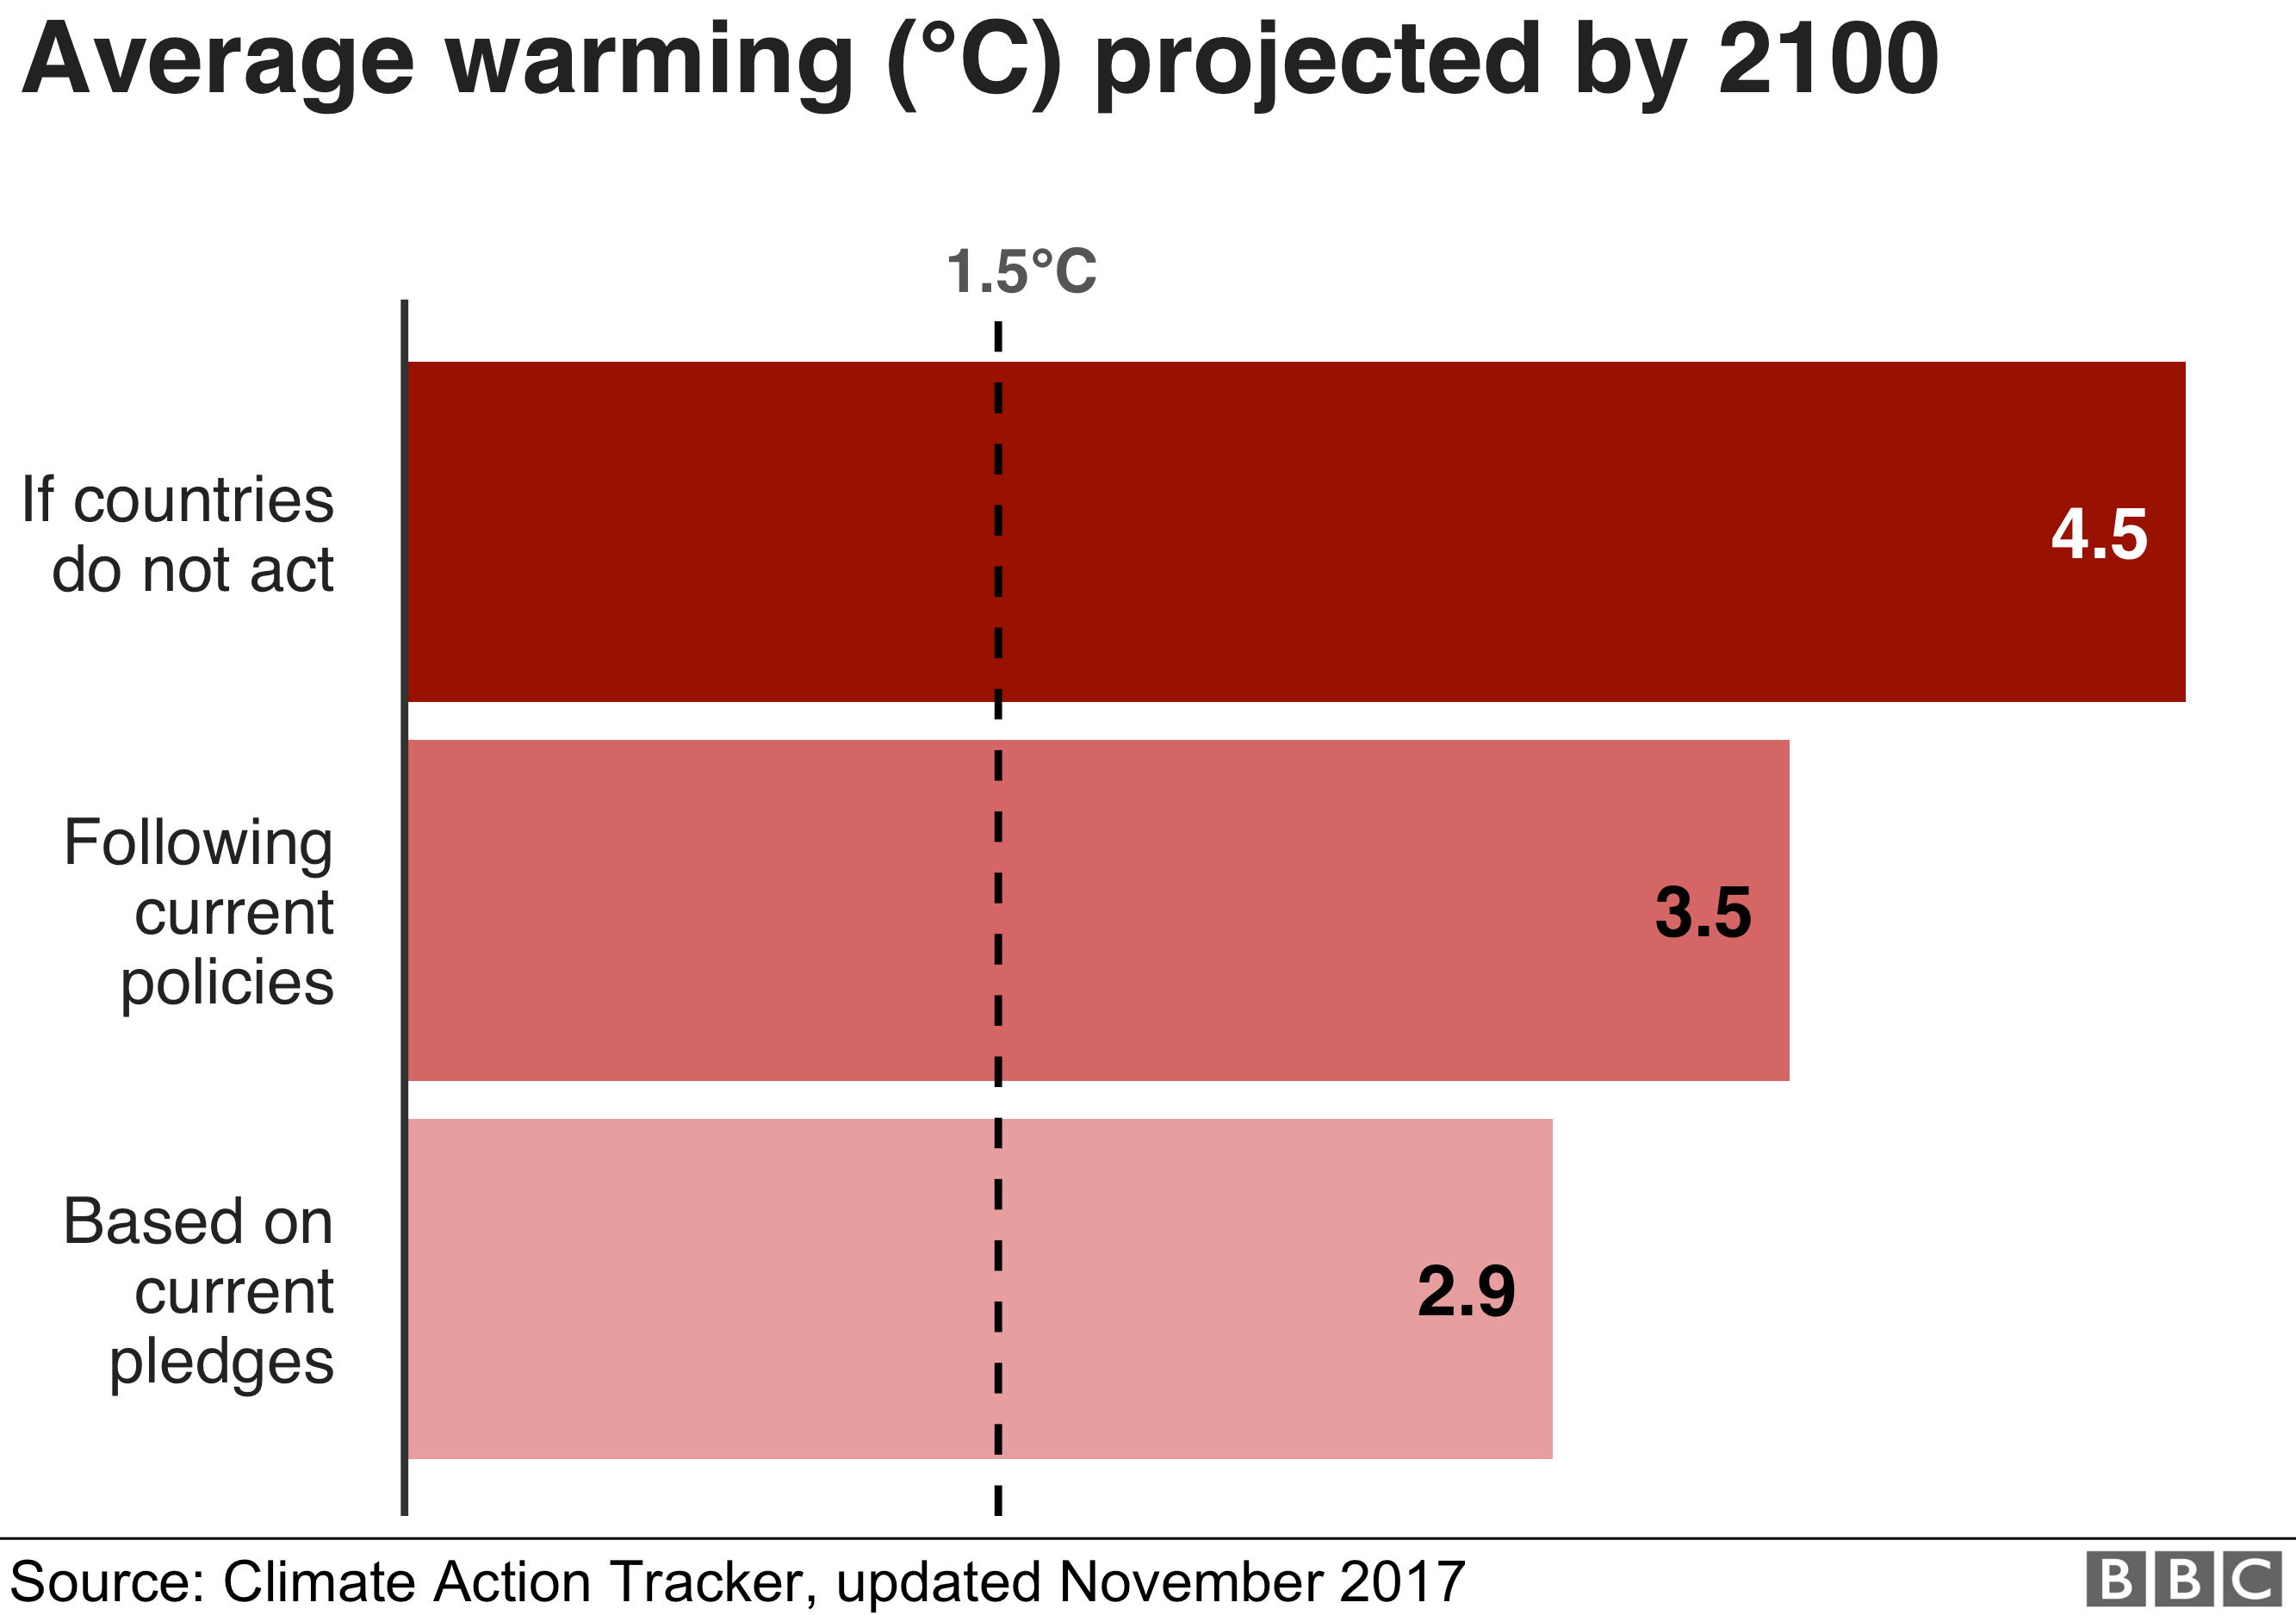 Chart showing the average warming by 2100